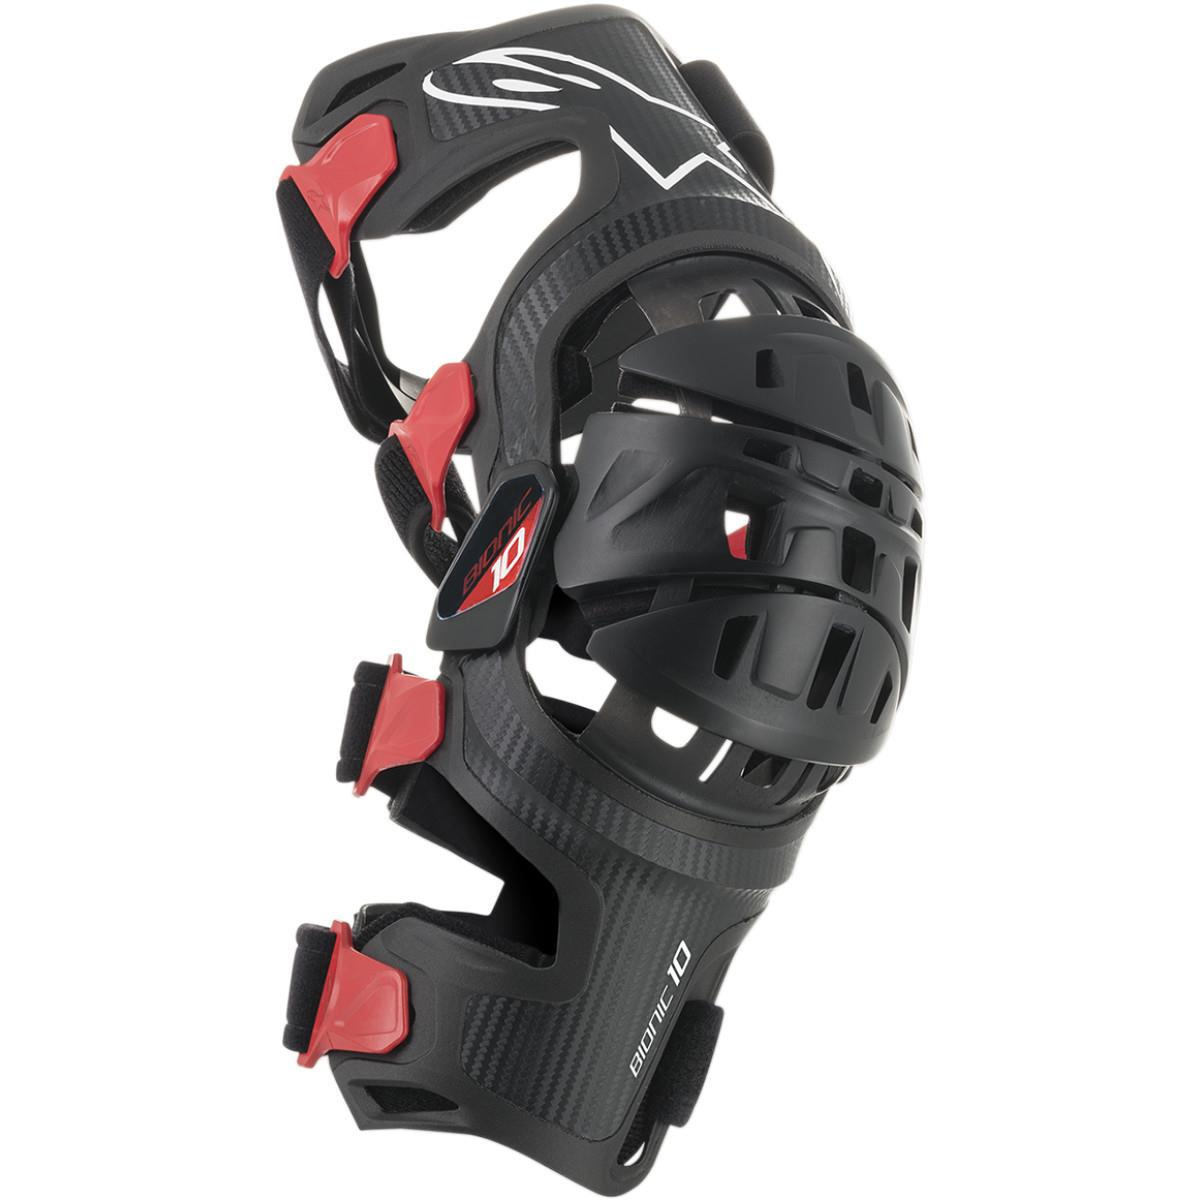 Mx Knee Braces >> Alpinestars Knee Brace Bionic 10 Carbon Left Black Red